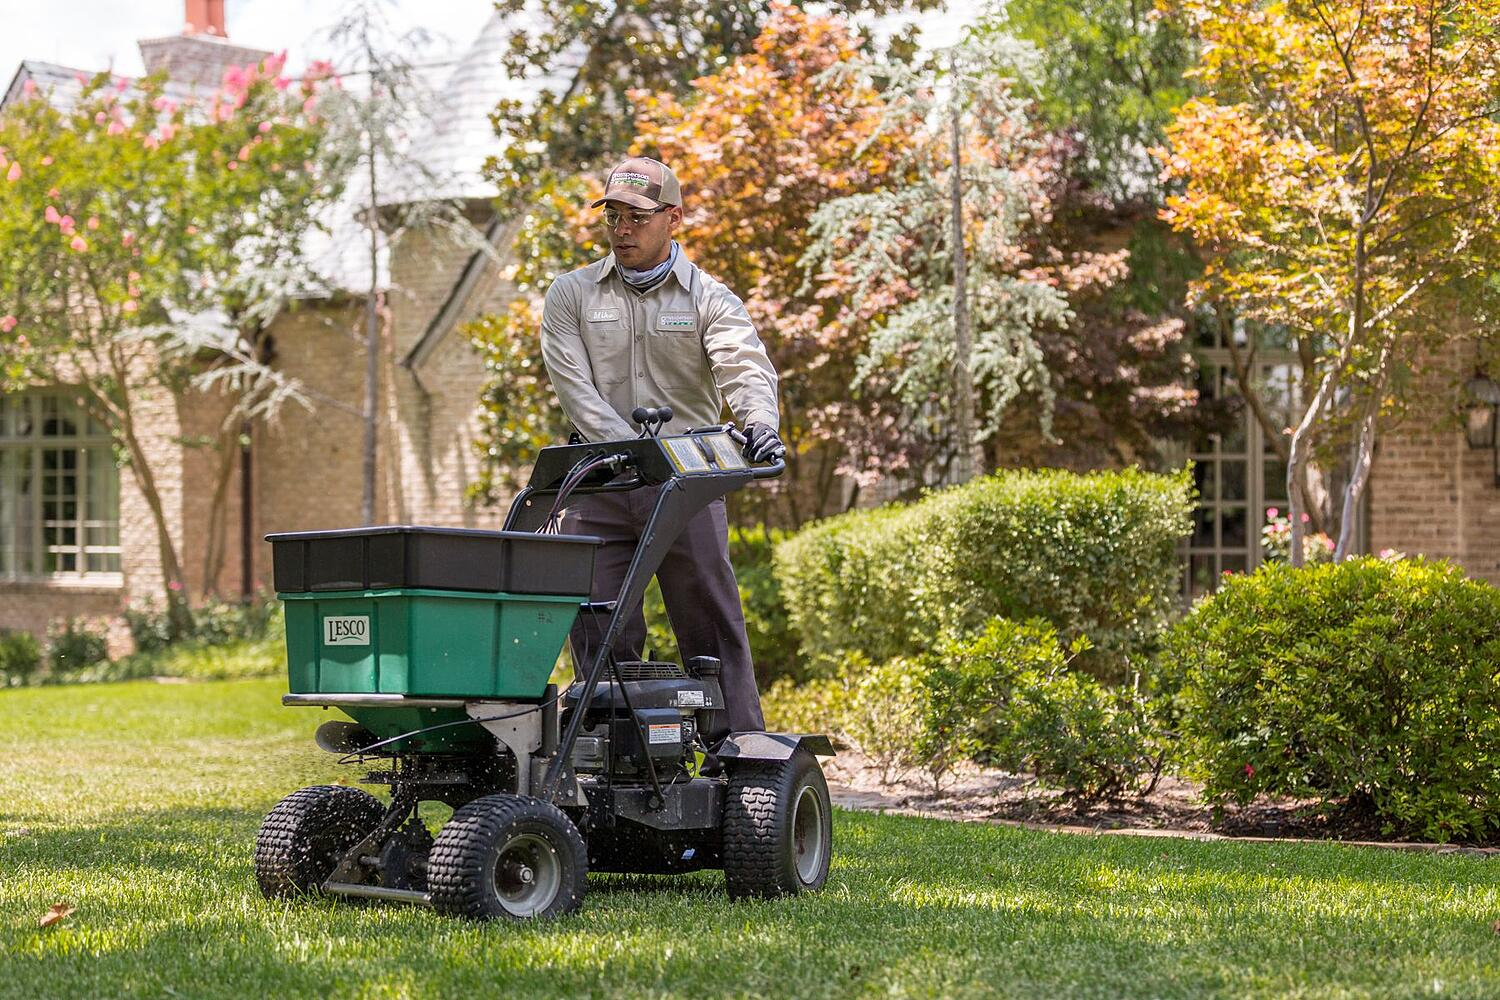 Grassperson lawn care employee treating lawn in Highland Village, TX